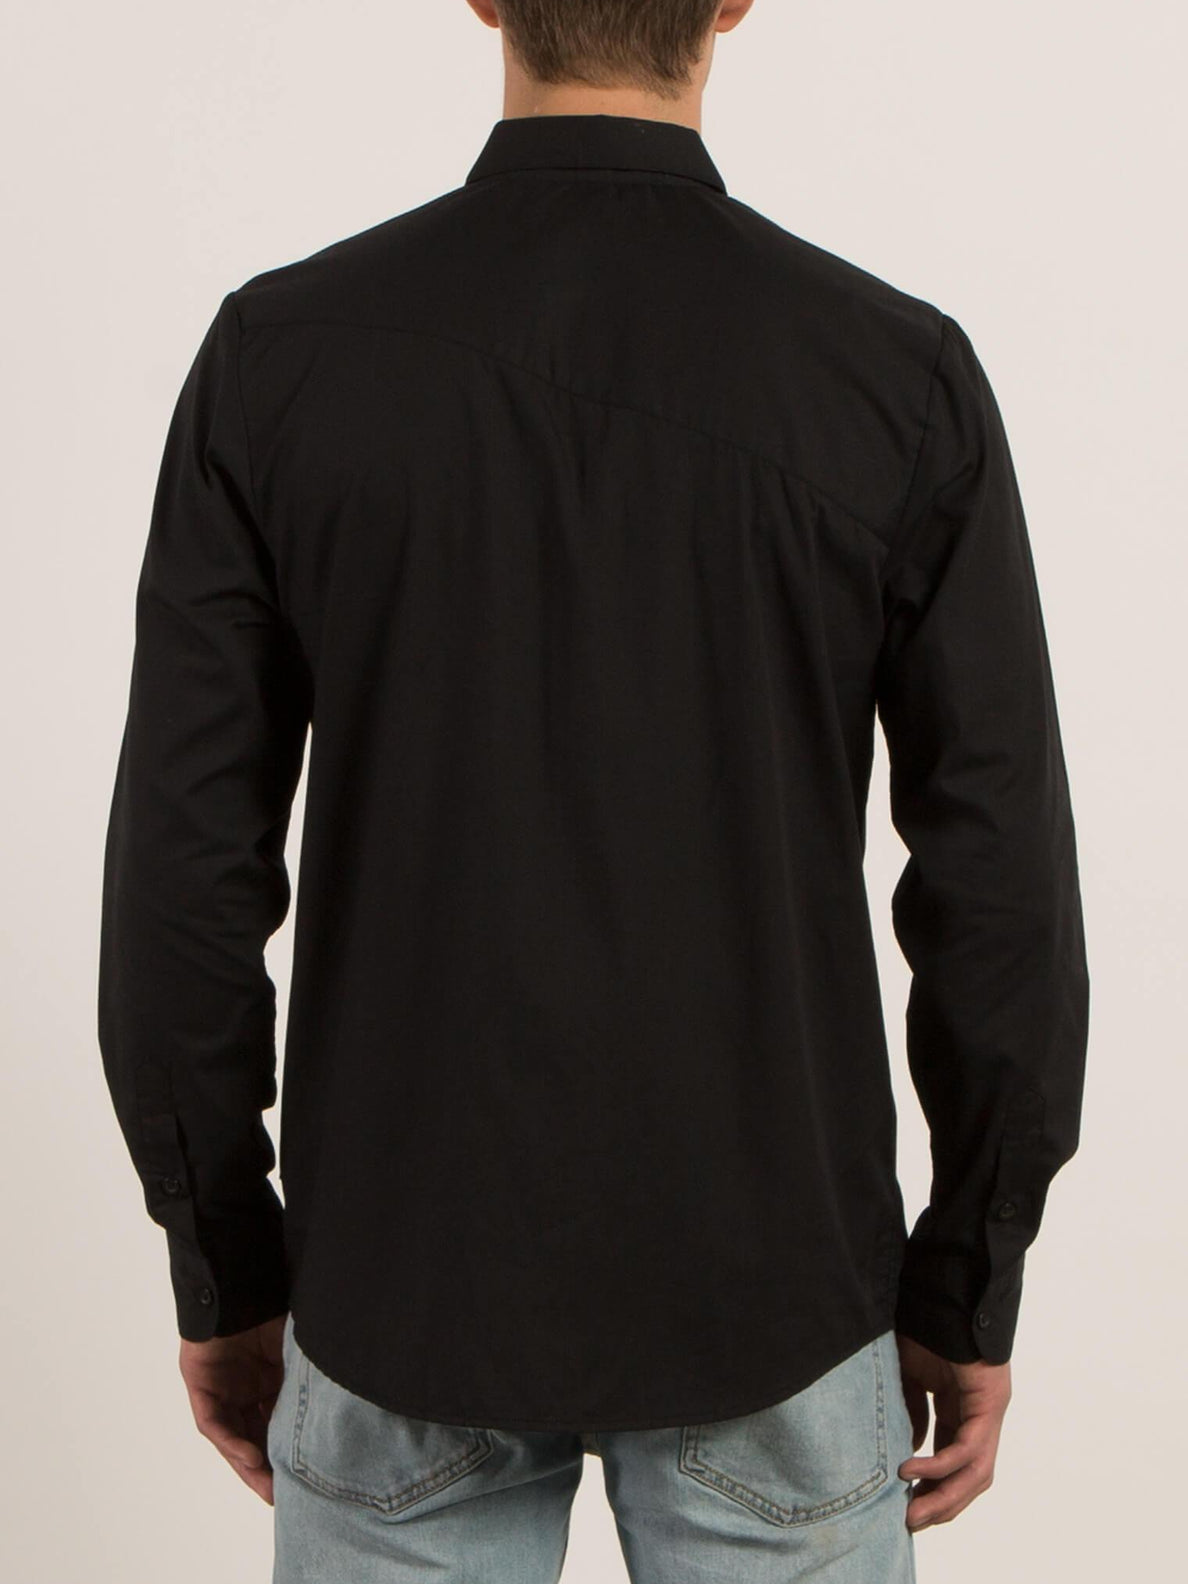 Everett Solid Shirt - Black